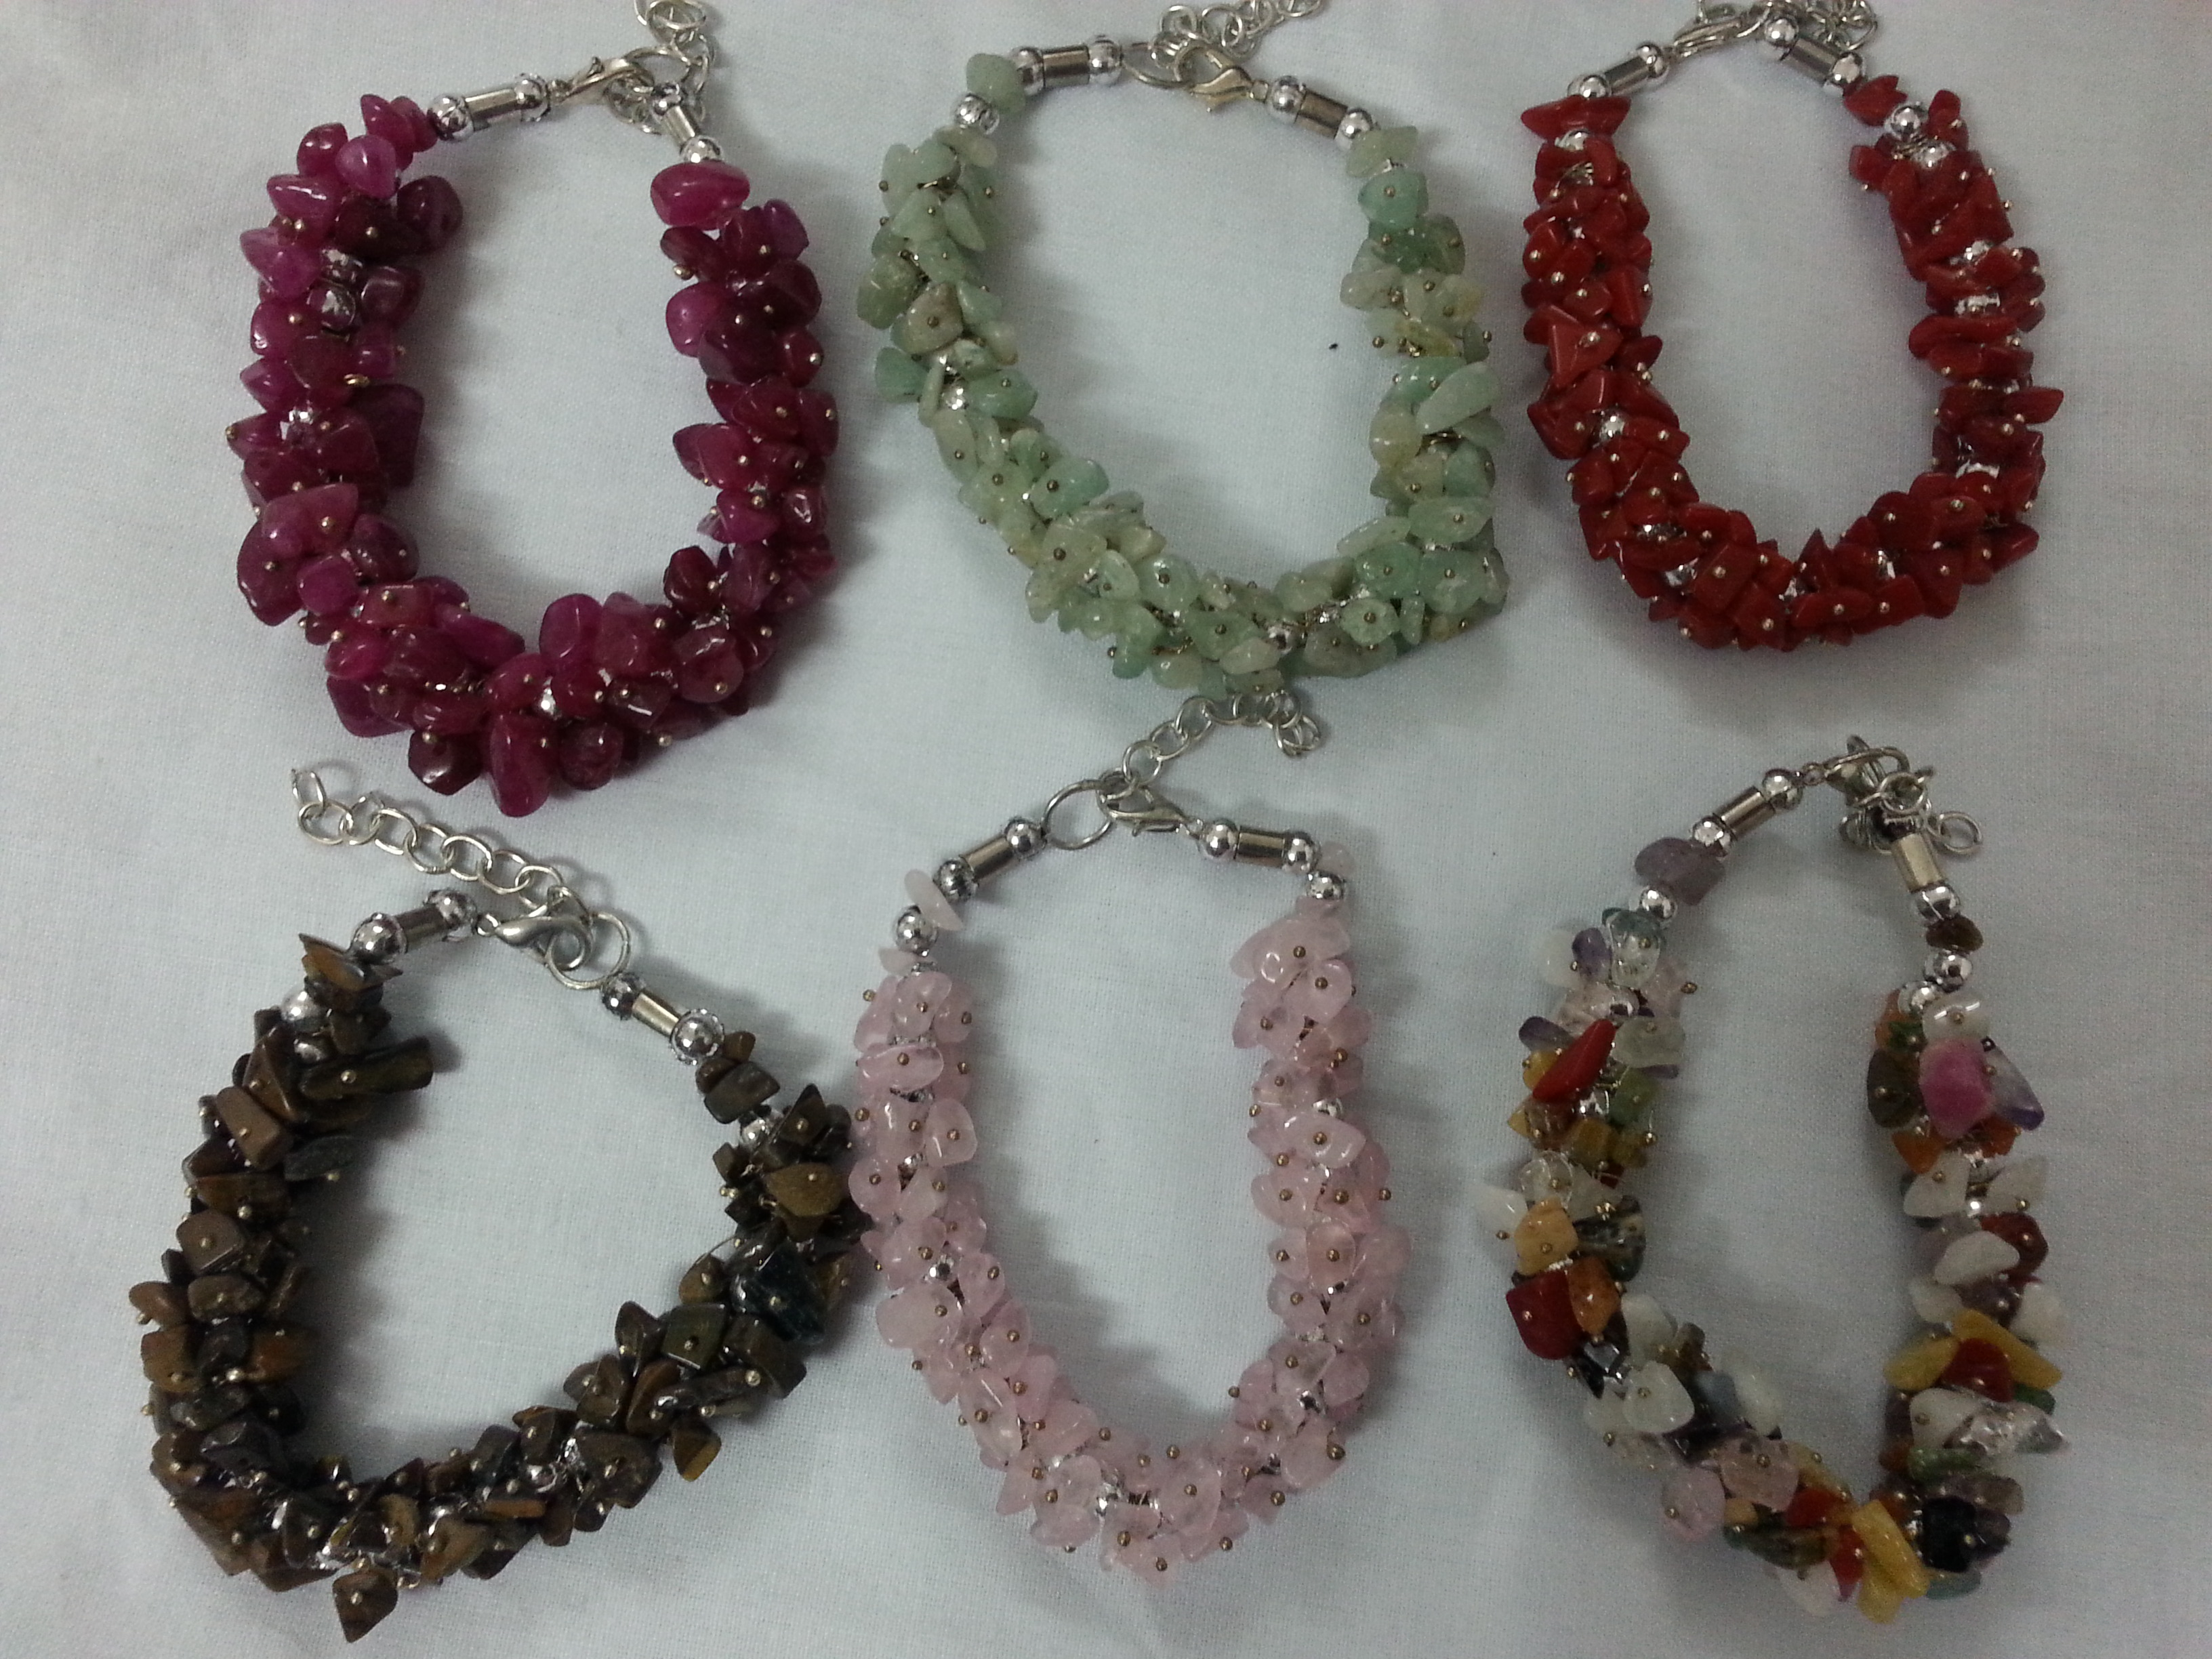 color beads mix wholesale store gemstone bead product matte elastic bracelet amazonite gifts